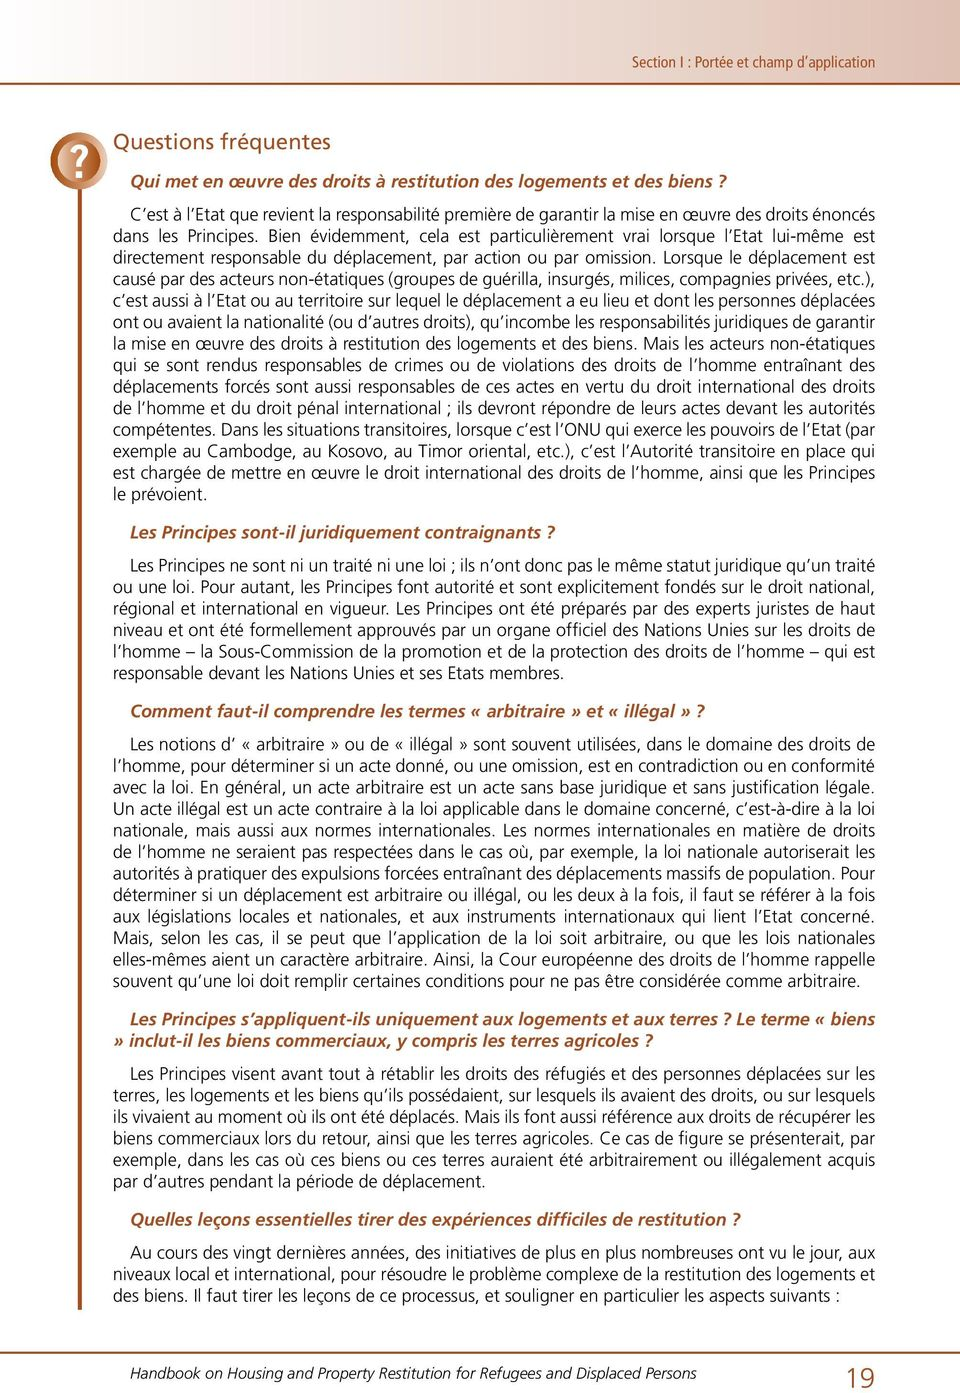 Bien évidemment, cela est particulièrement vrai lorsque l Etat lui-même est directement Ultimateresponsable responsibility du déplacement, for securingpar action implementation ou par omission.